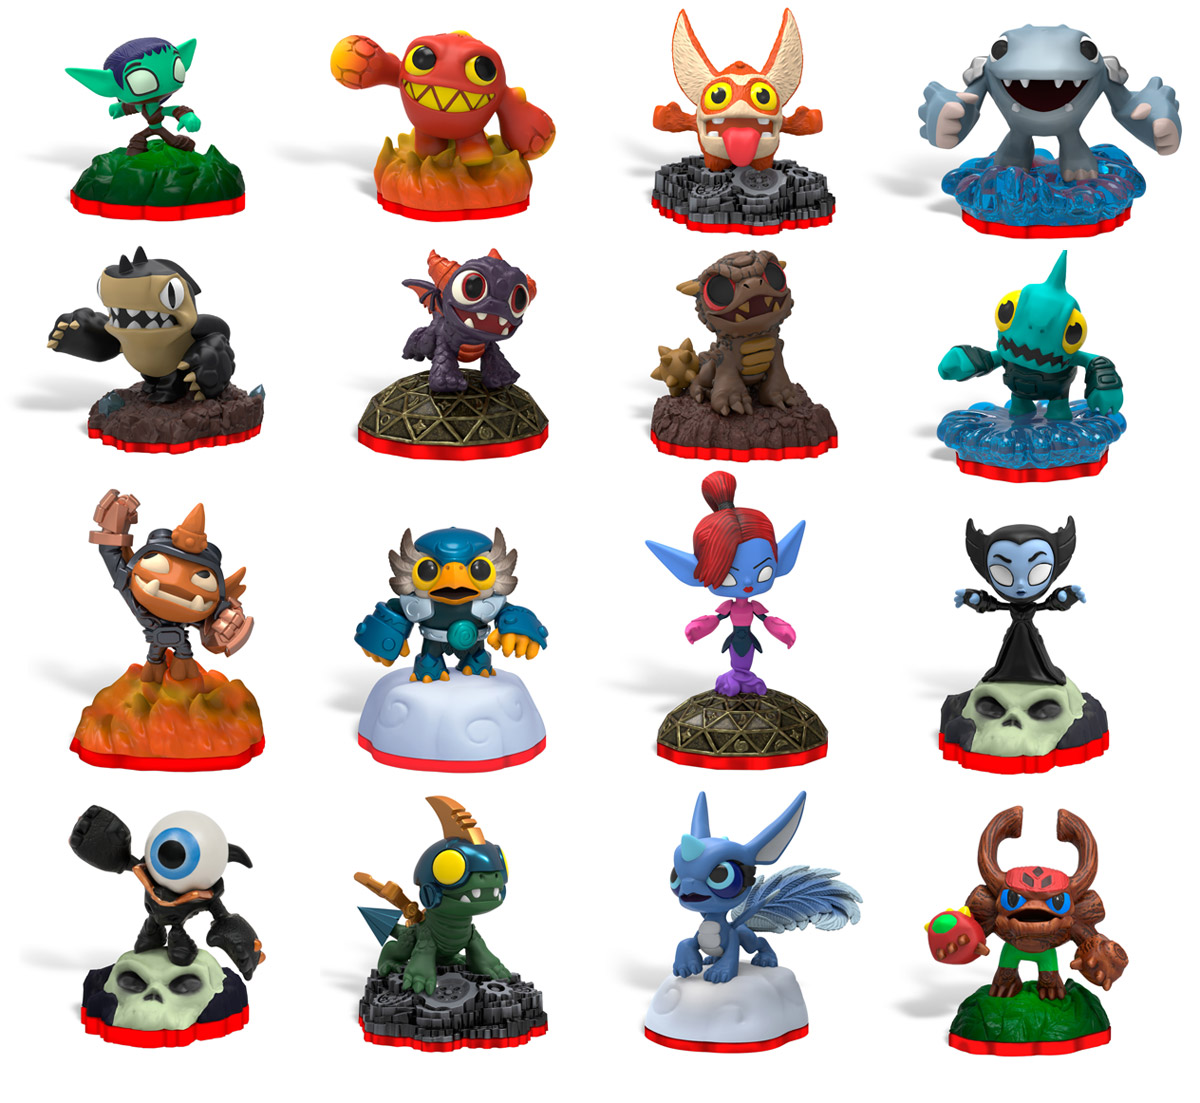 Skylanders Minis Sneak Into Skylanders Trap Team - TheHDRoom